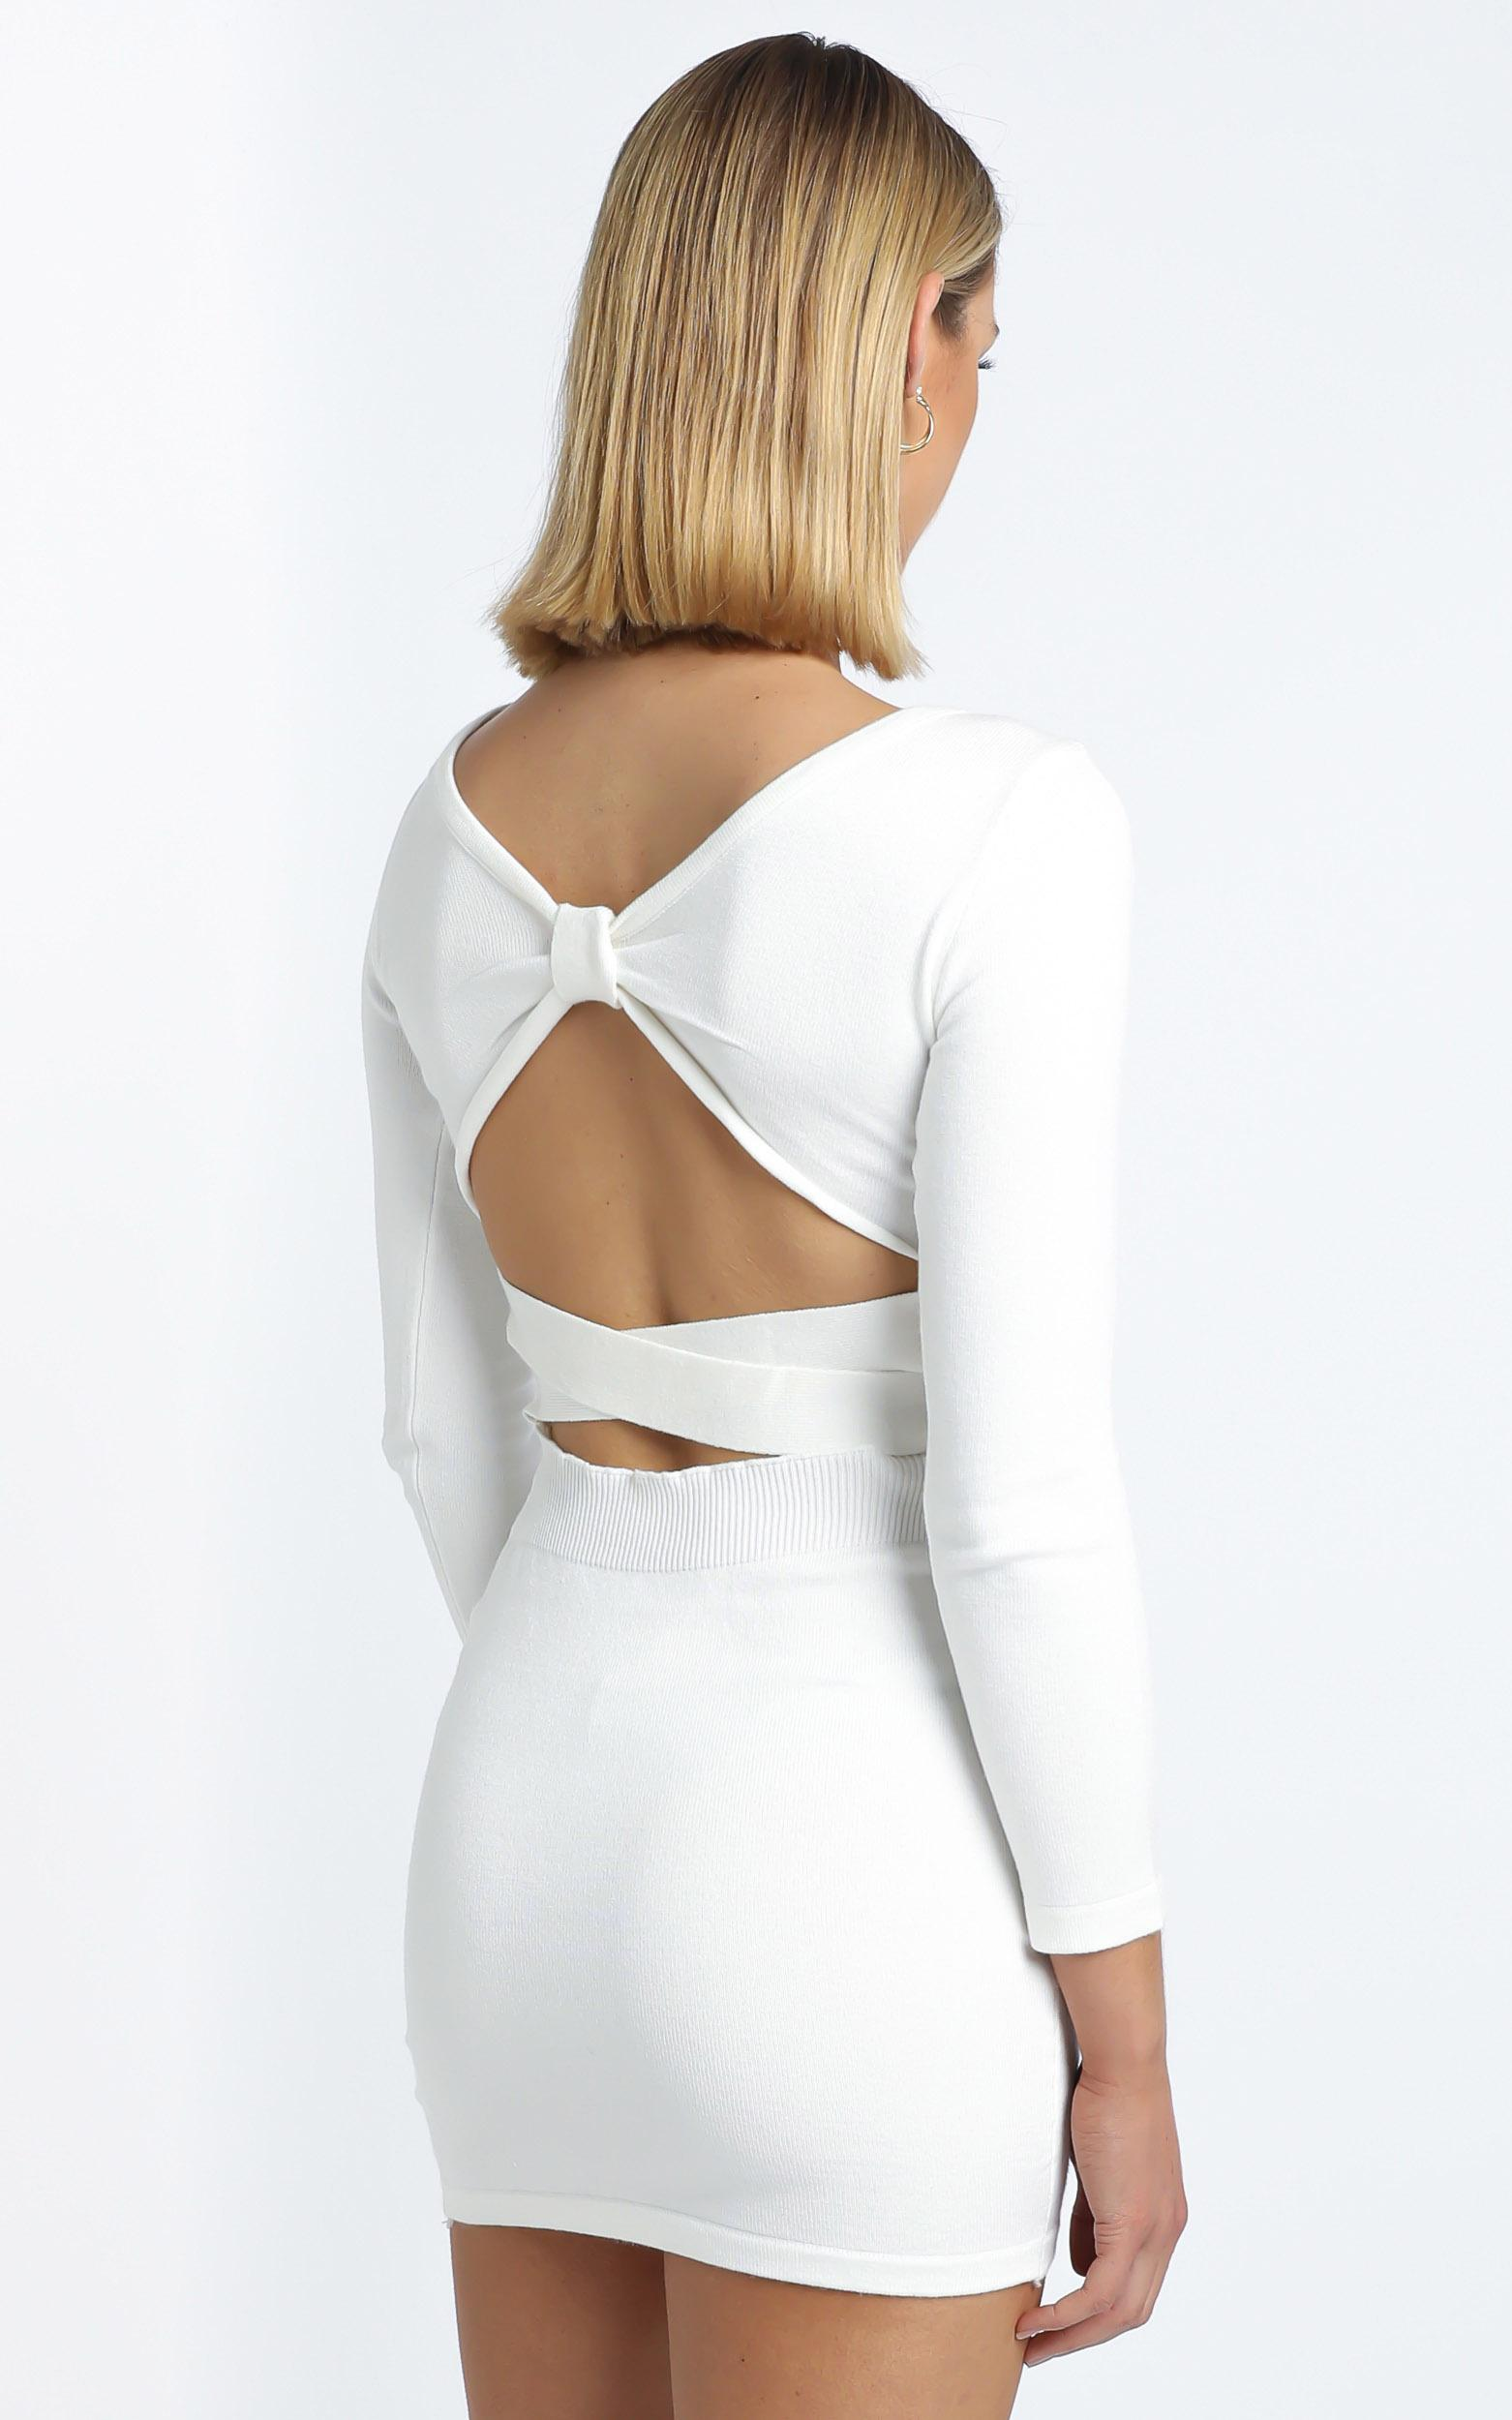 Sonya Knit Dress in White - 12 (L), White, hi-res image number null